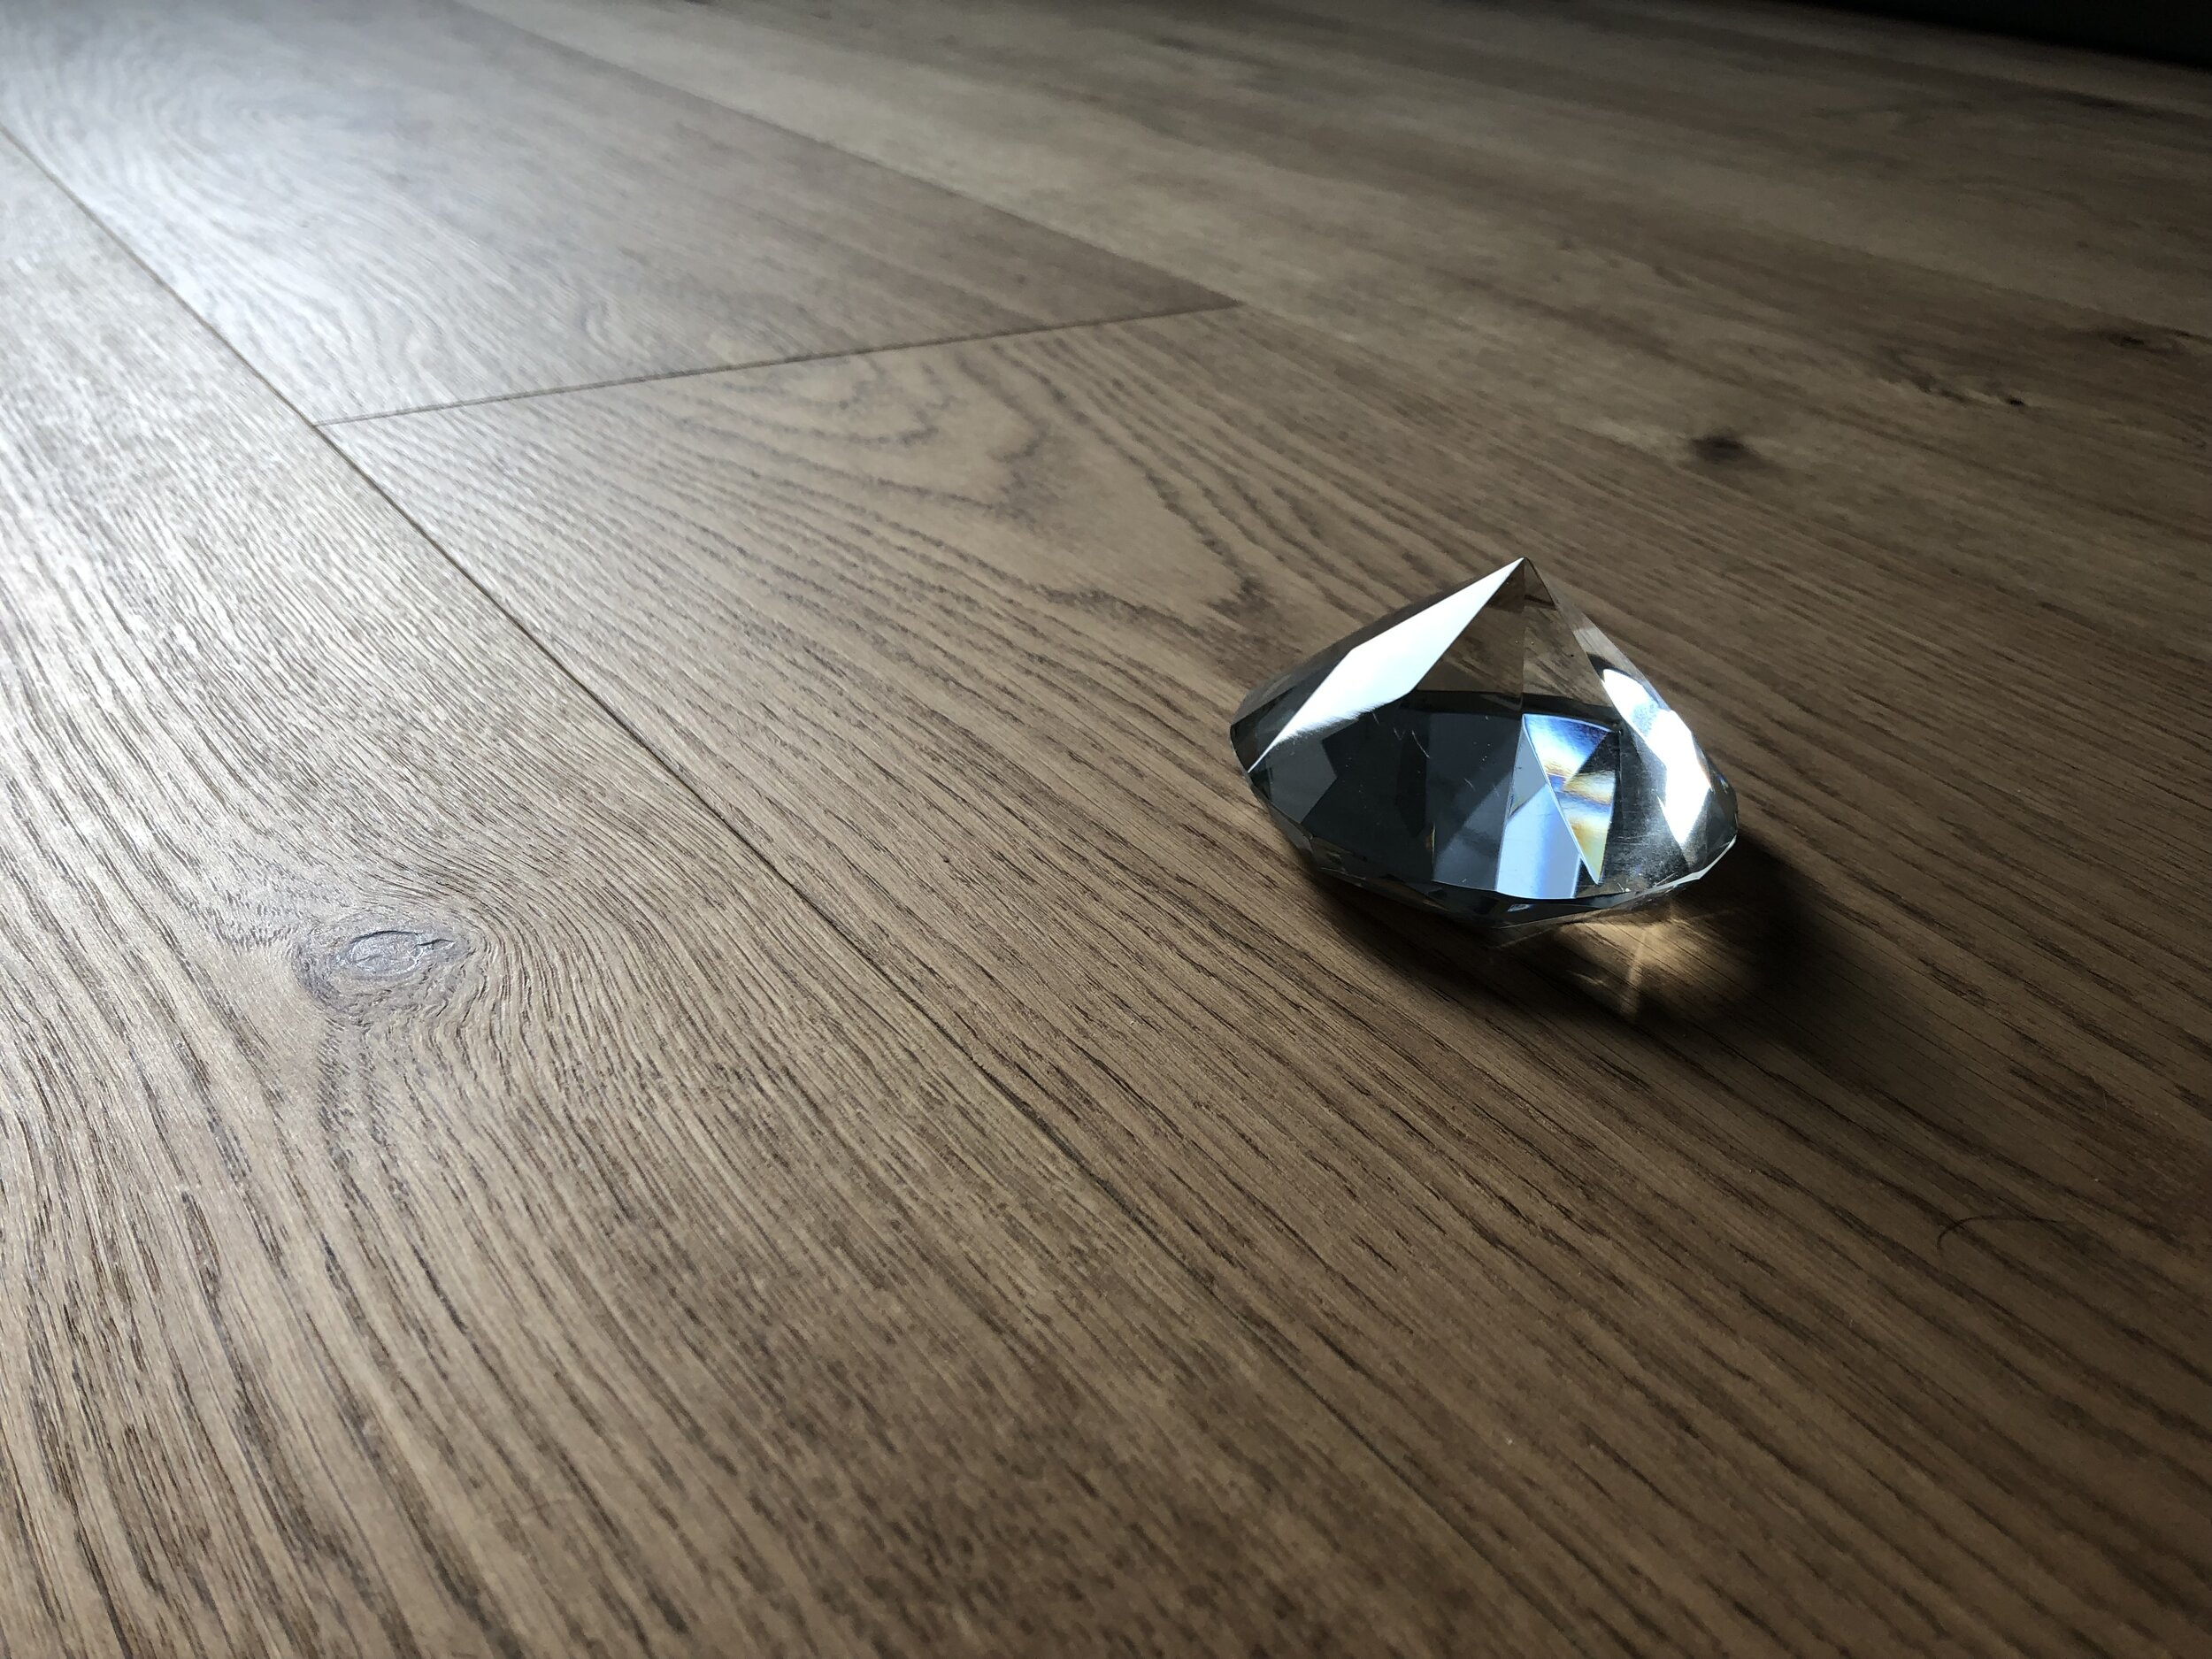 Like a lump of coal is transformed into a diamond, the wood layer is hardened by high pressure and temperature. - - The result is a hardened wood surface that is 3 x stronger than traditional wood flooring.